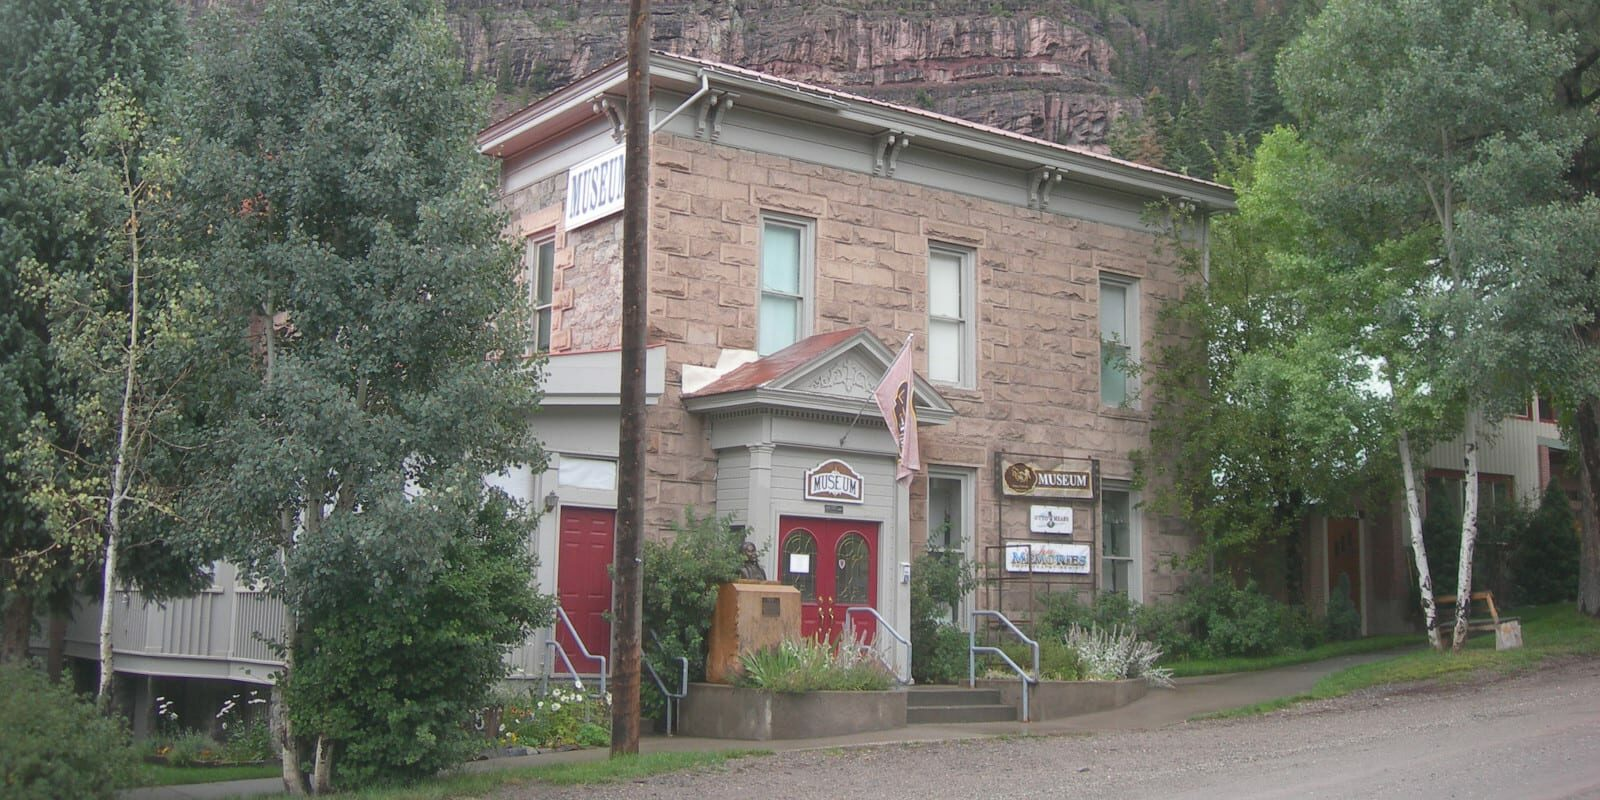 Image of the Ouray County Museum in Ouray, Colorado